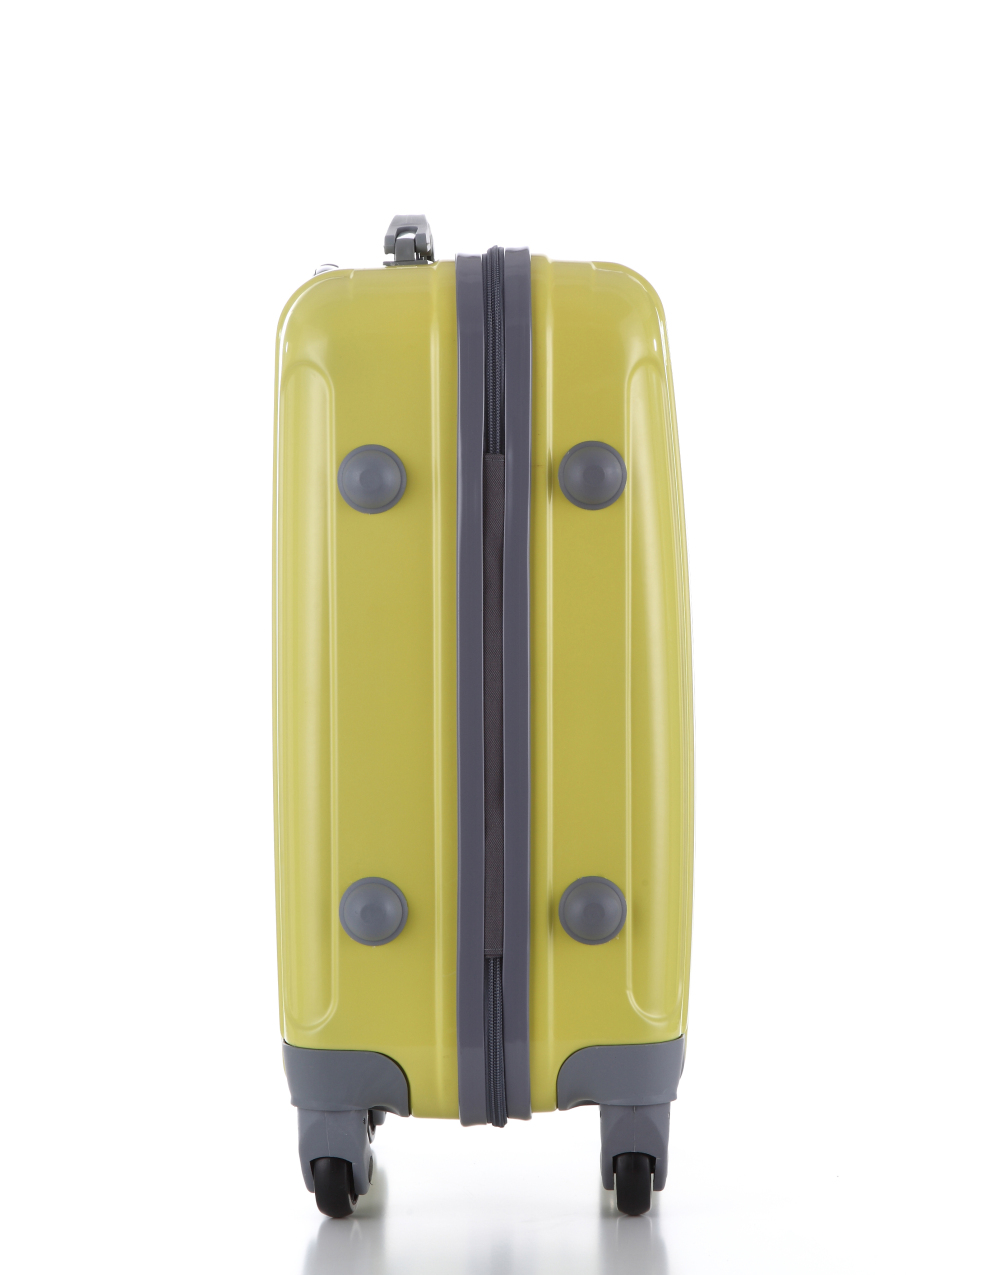 List Manufacturers of Newest Luggage, Buy Newest Luggage, Get ...